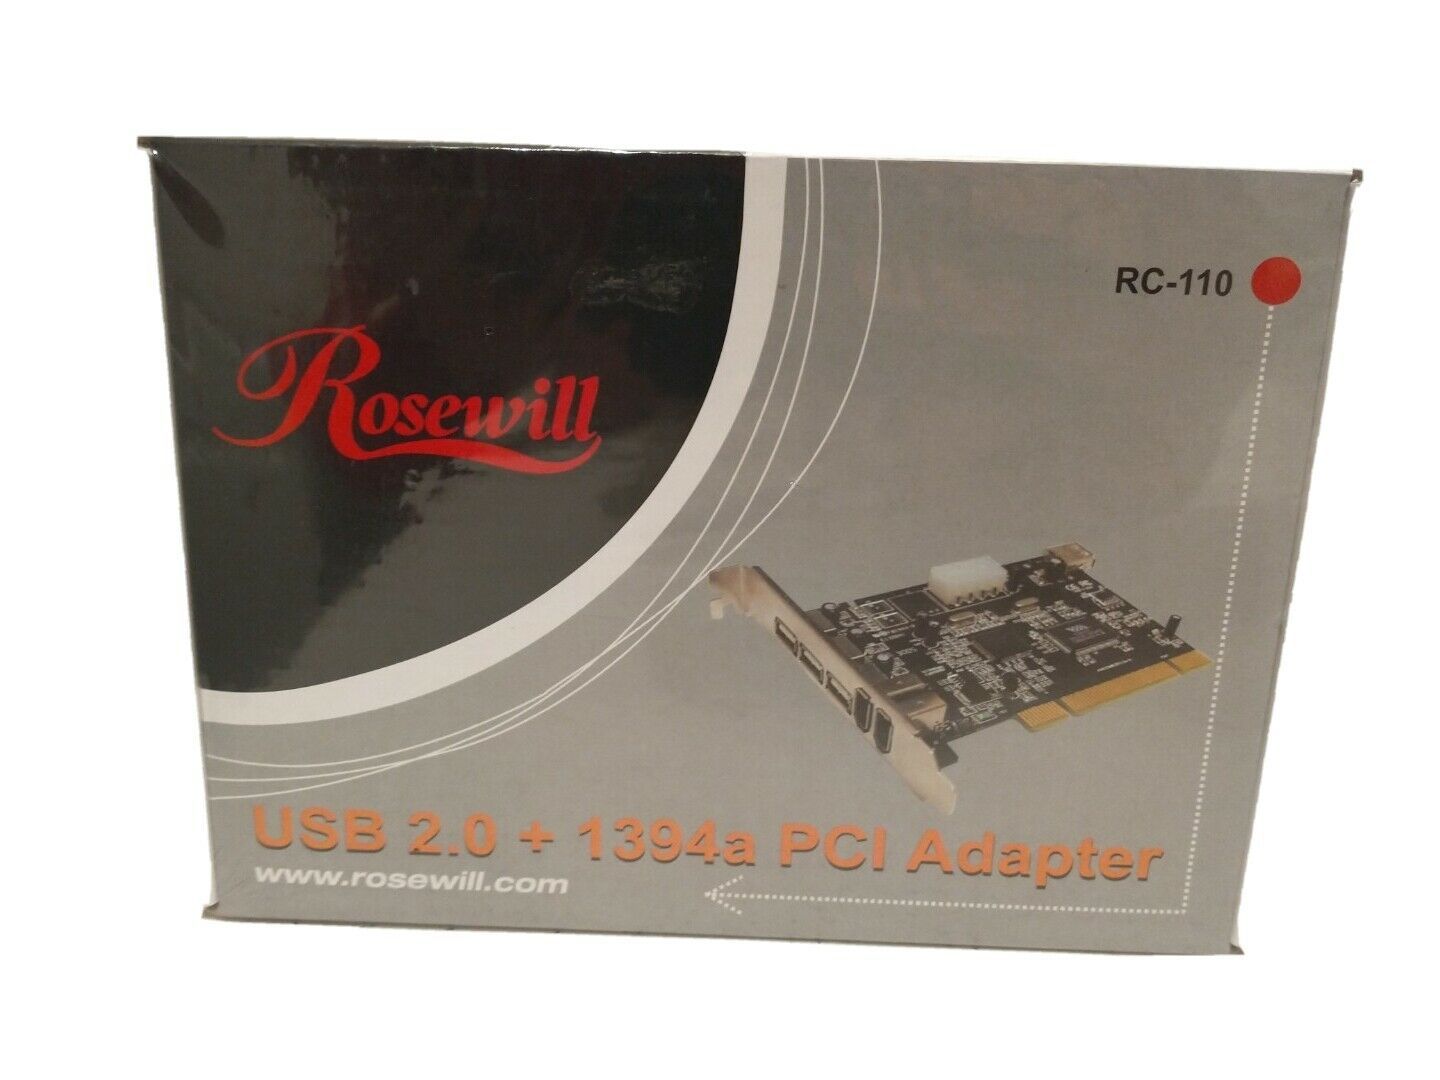 Rosewill RC-110 USB 2.0 1394a PCI Adapter - Brand New & Sealed